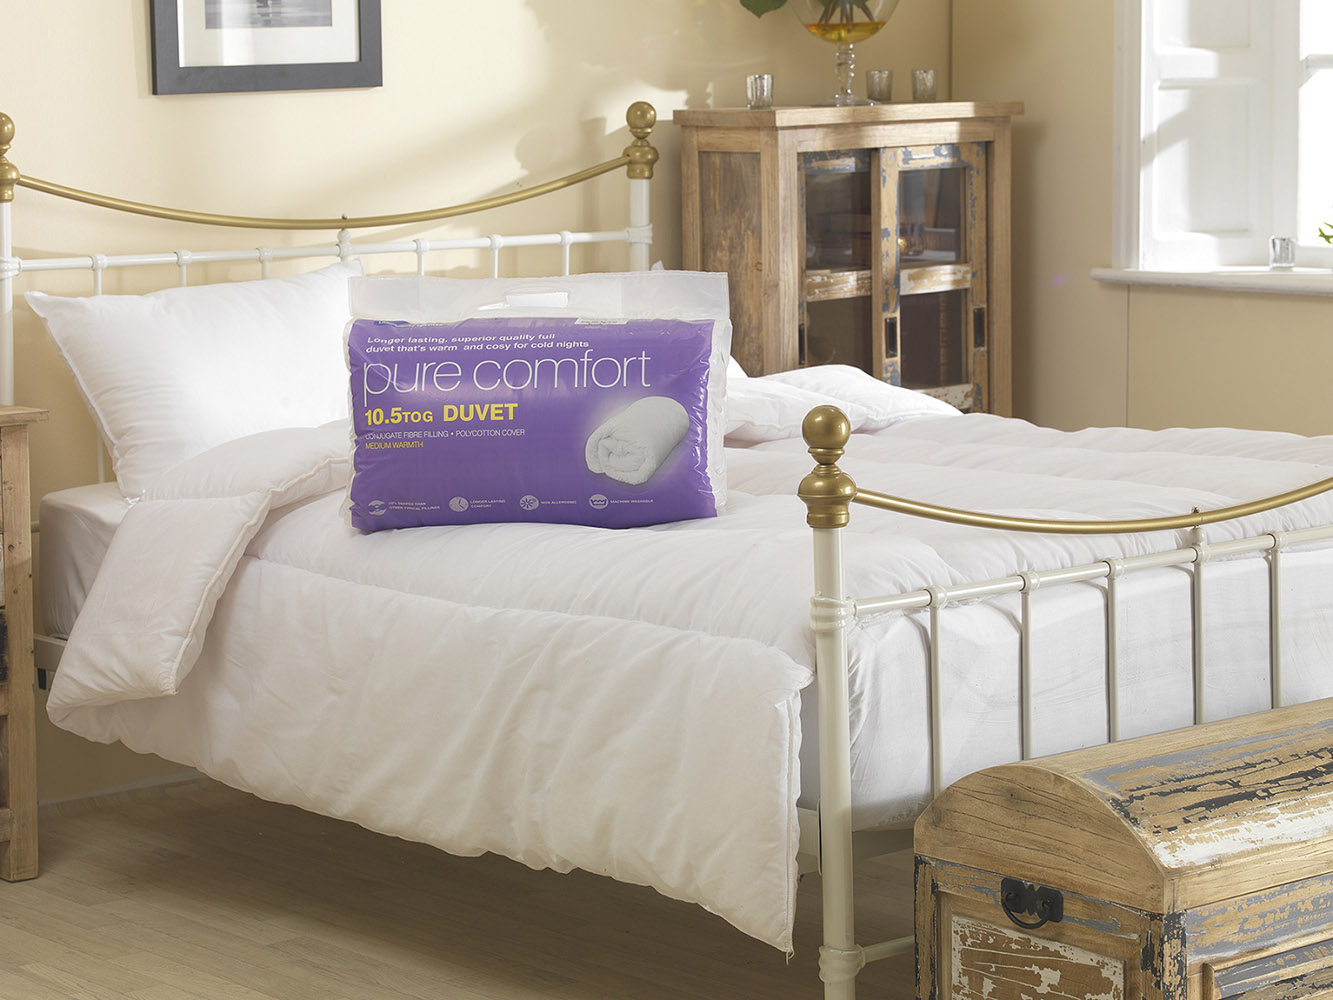 10.5 Tog - Luxury Super Soft Hollowfibre Filled Duvet